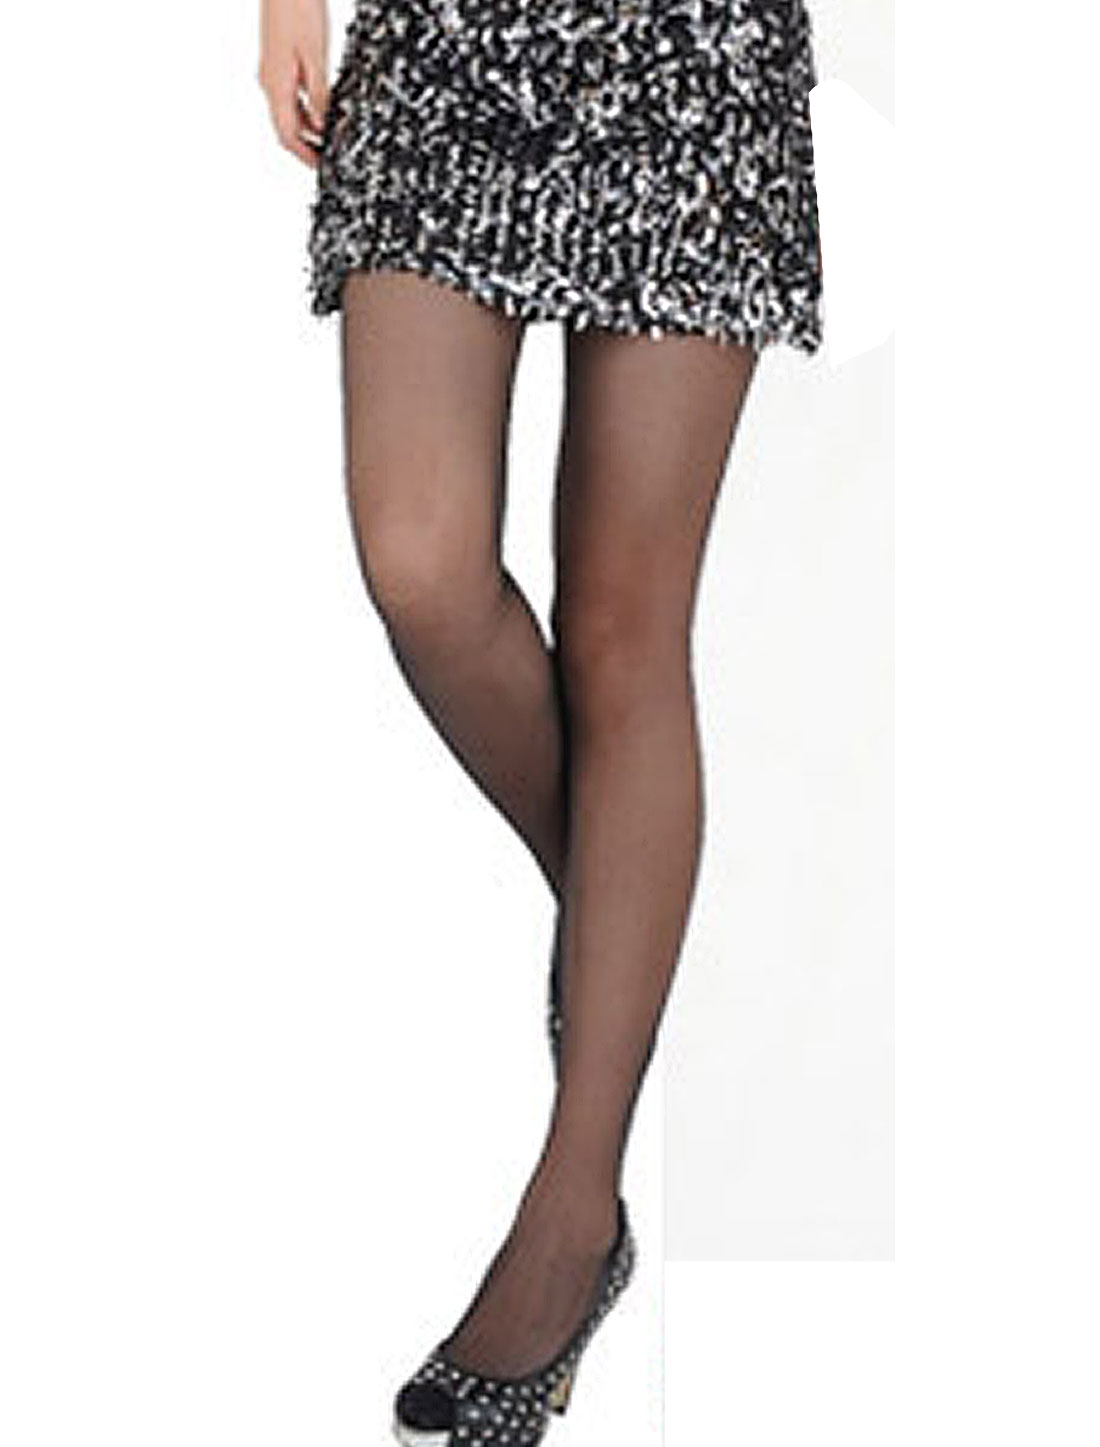 Rose Pattern Stretchy Summer Sexy Formfitting Pantyhose Tights Black for Women